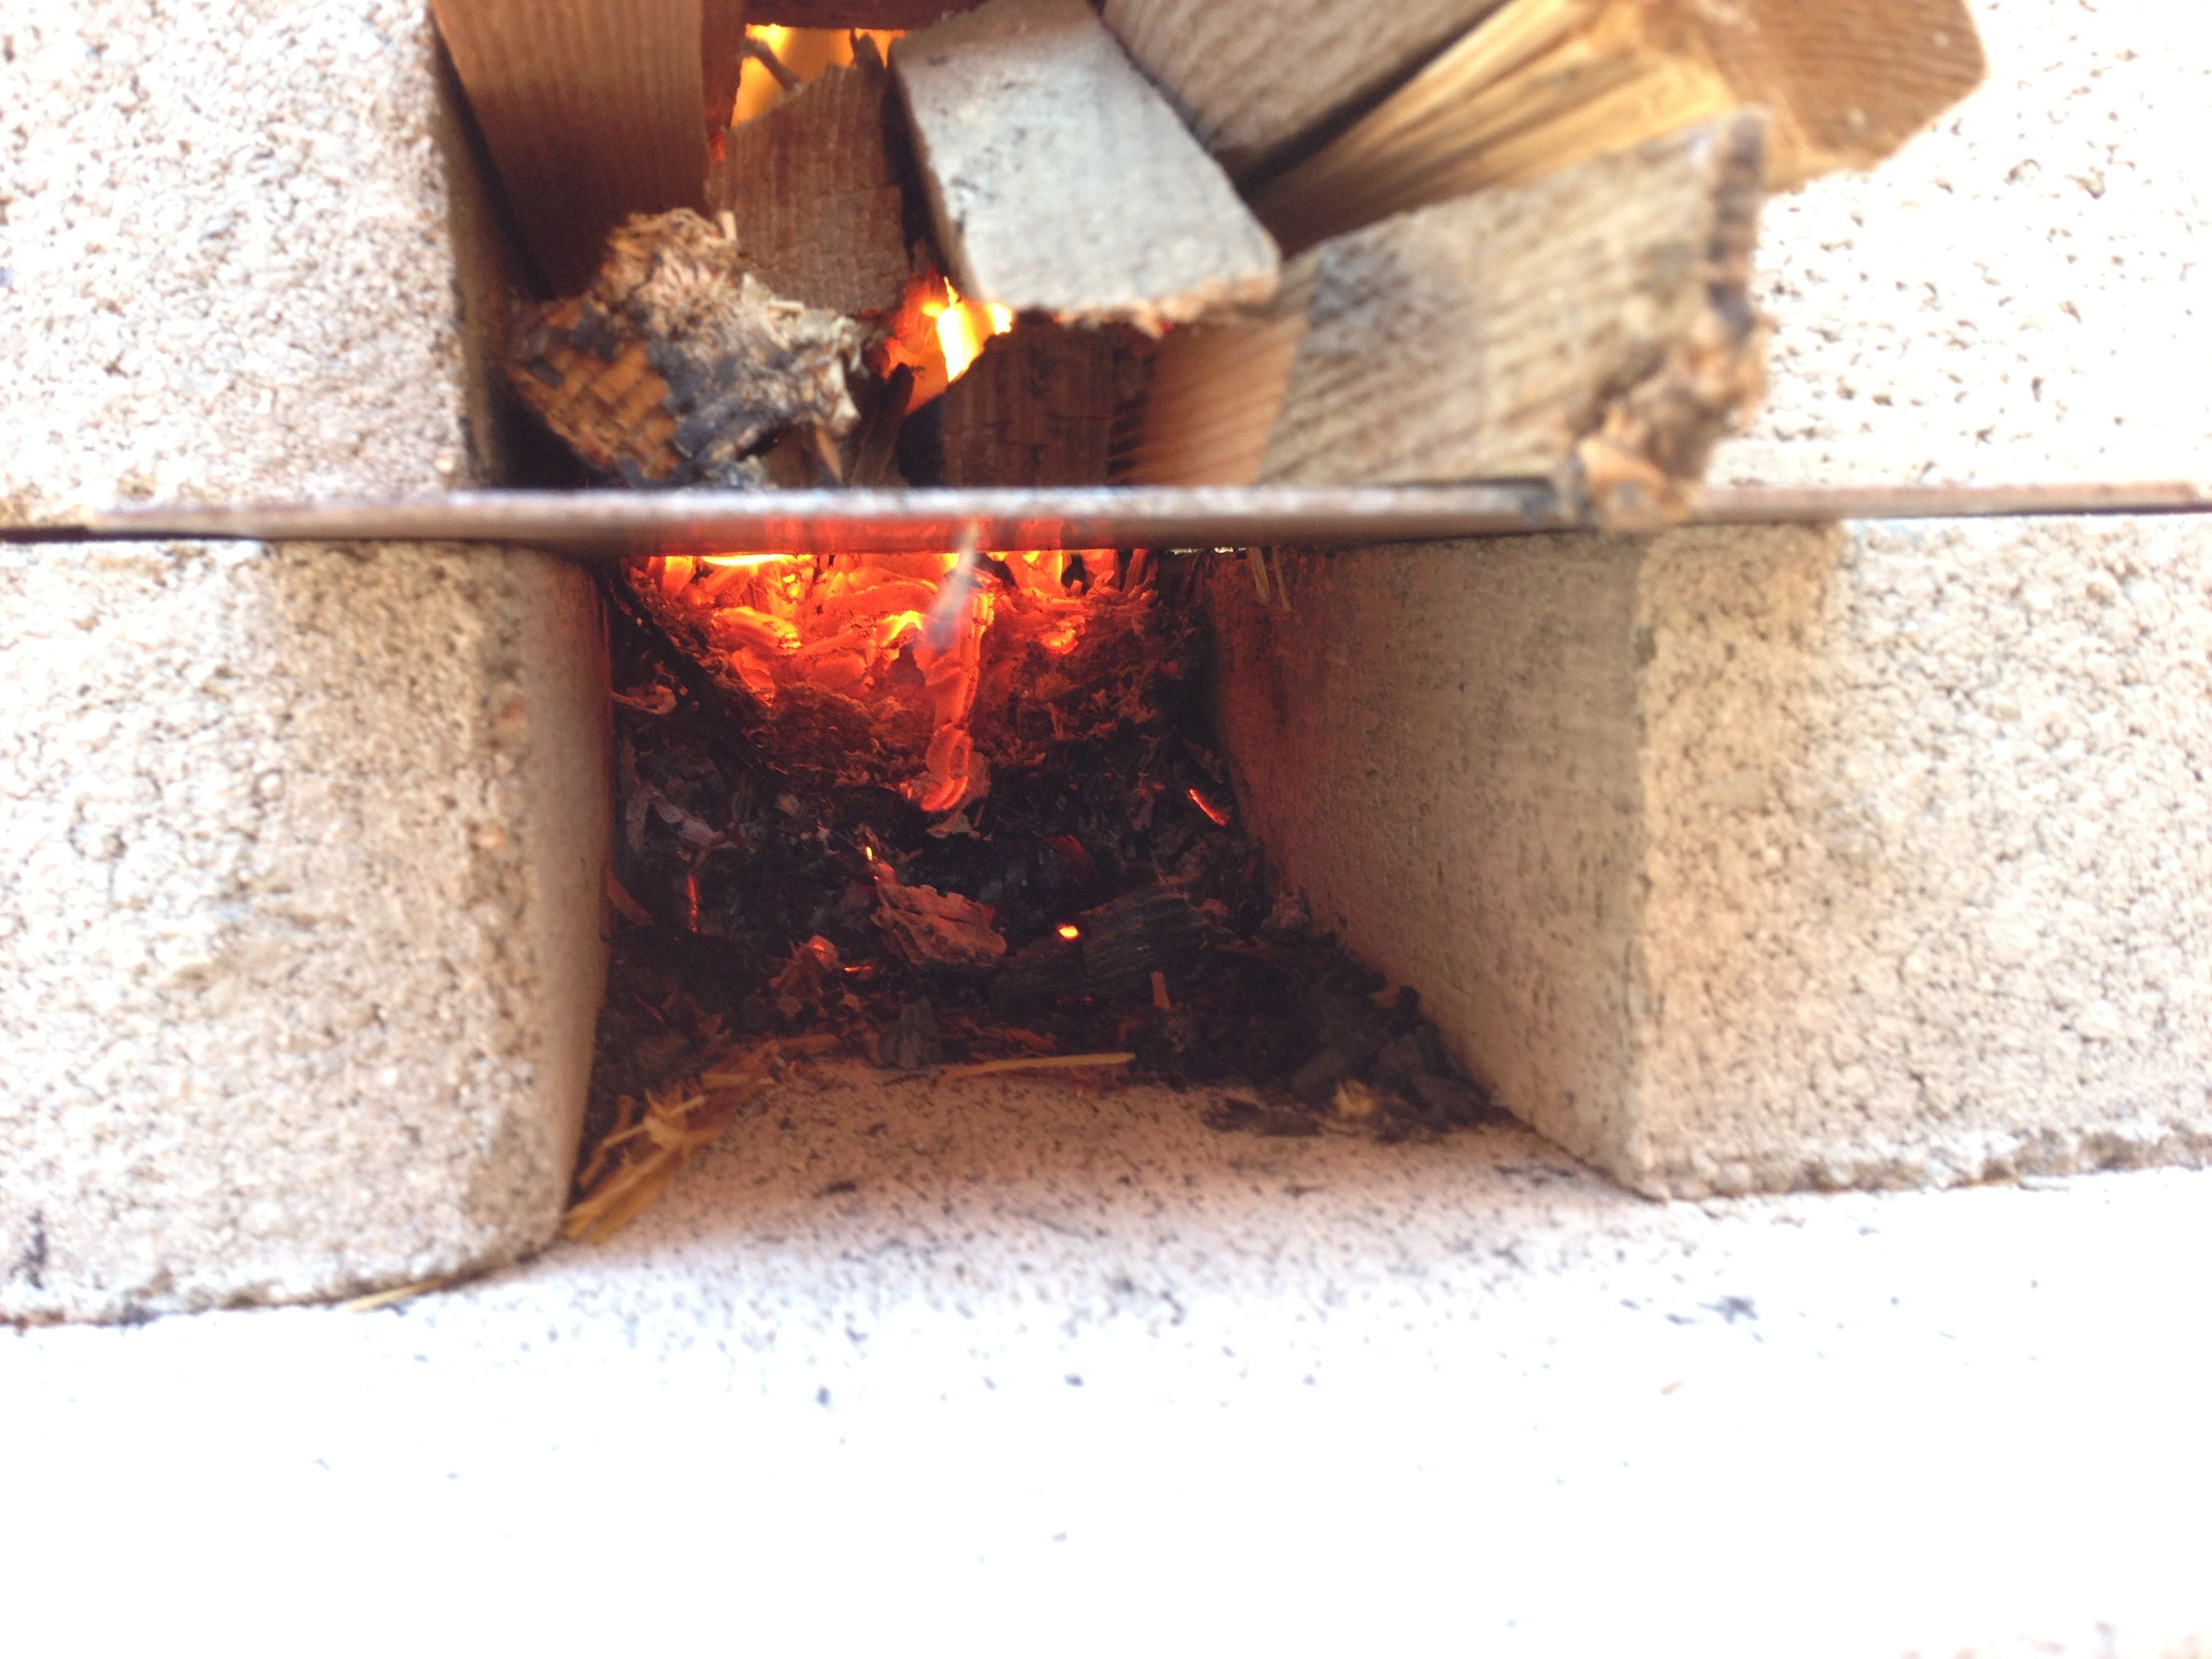 I Modified My Rocket Stove By Adding This Metal Plate Now You Can Add Tender To The Bottom And Put Wood Into Top It Gets Fire Started Without